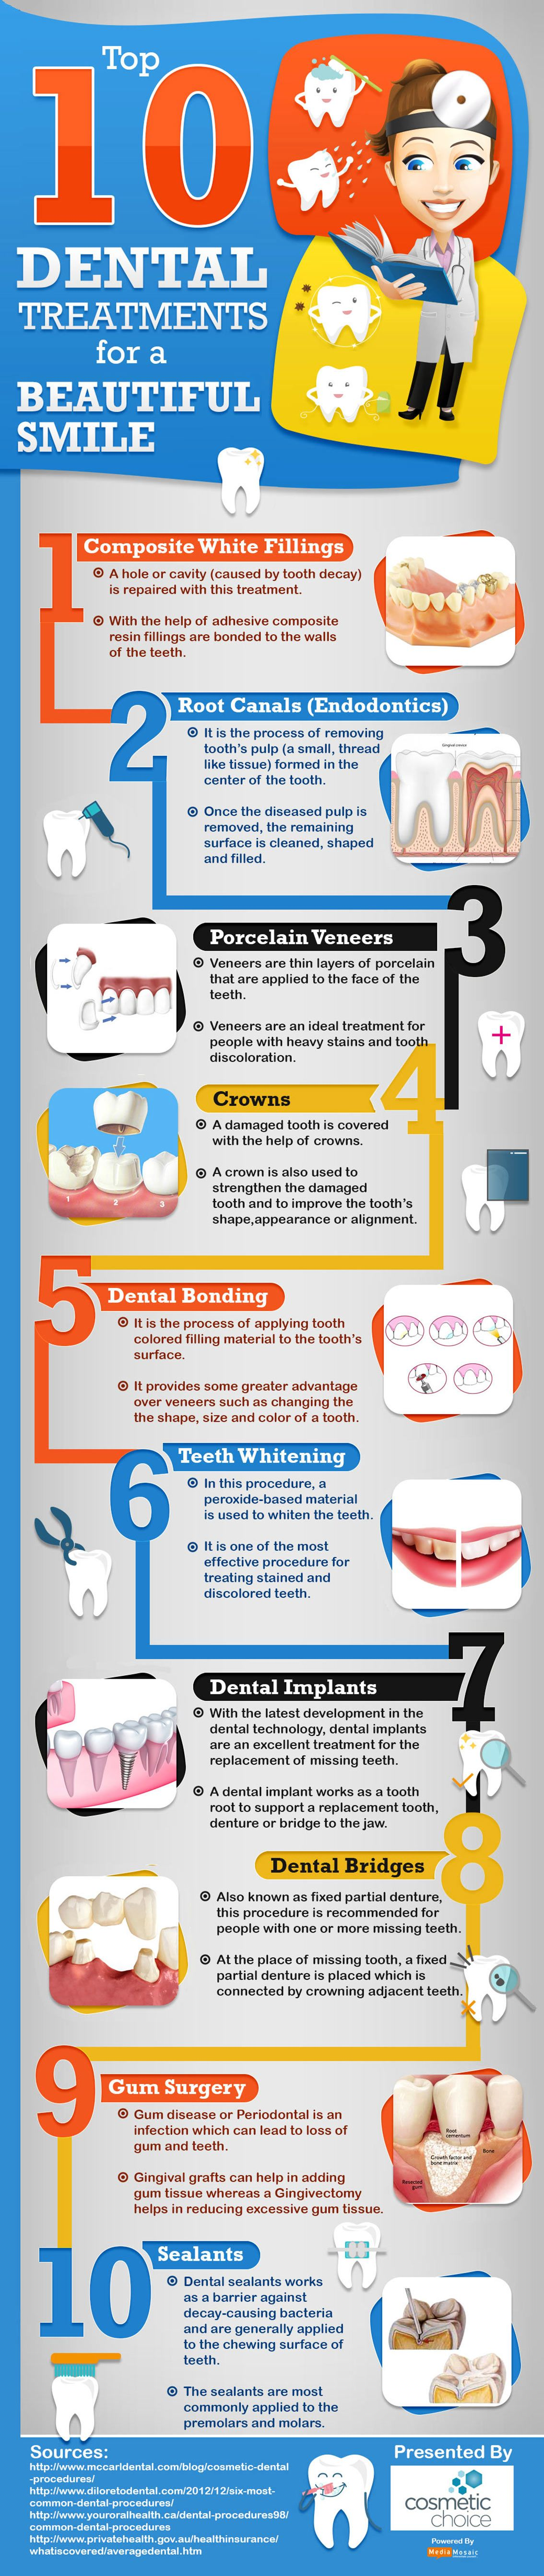 Top 10 Dental Procedures for a Beautiful Smile